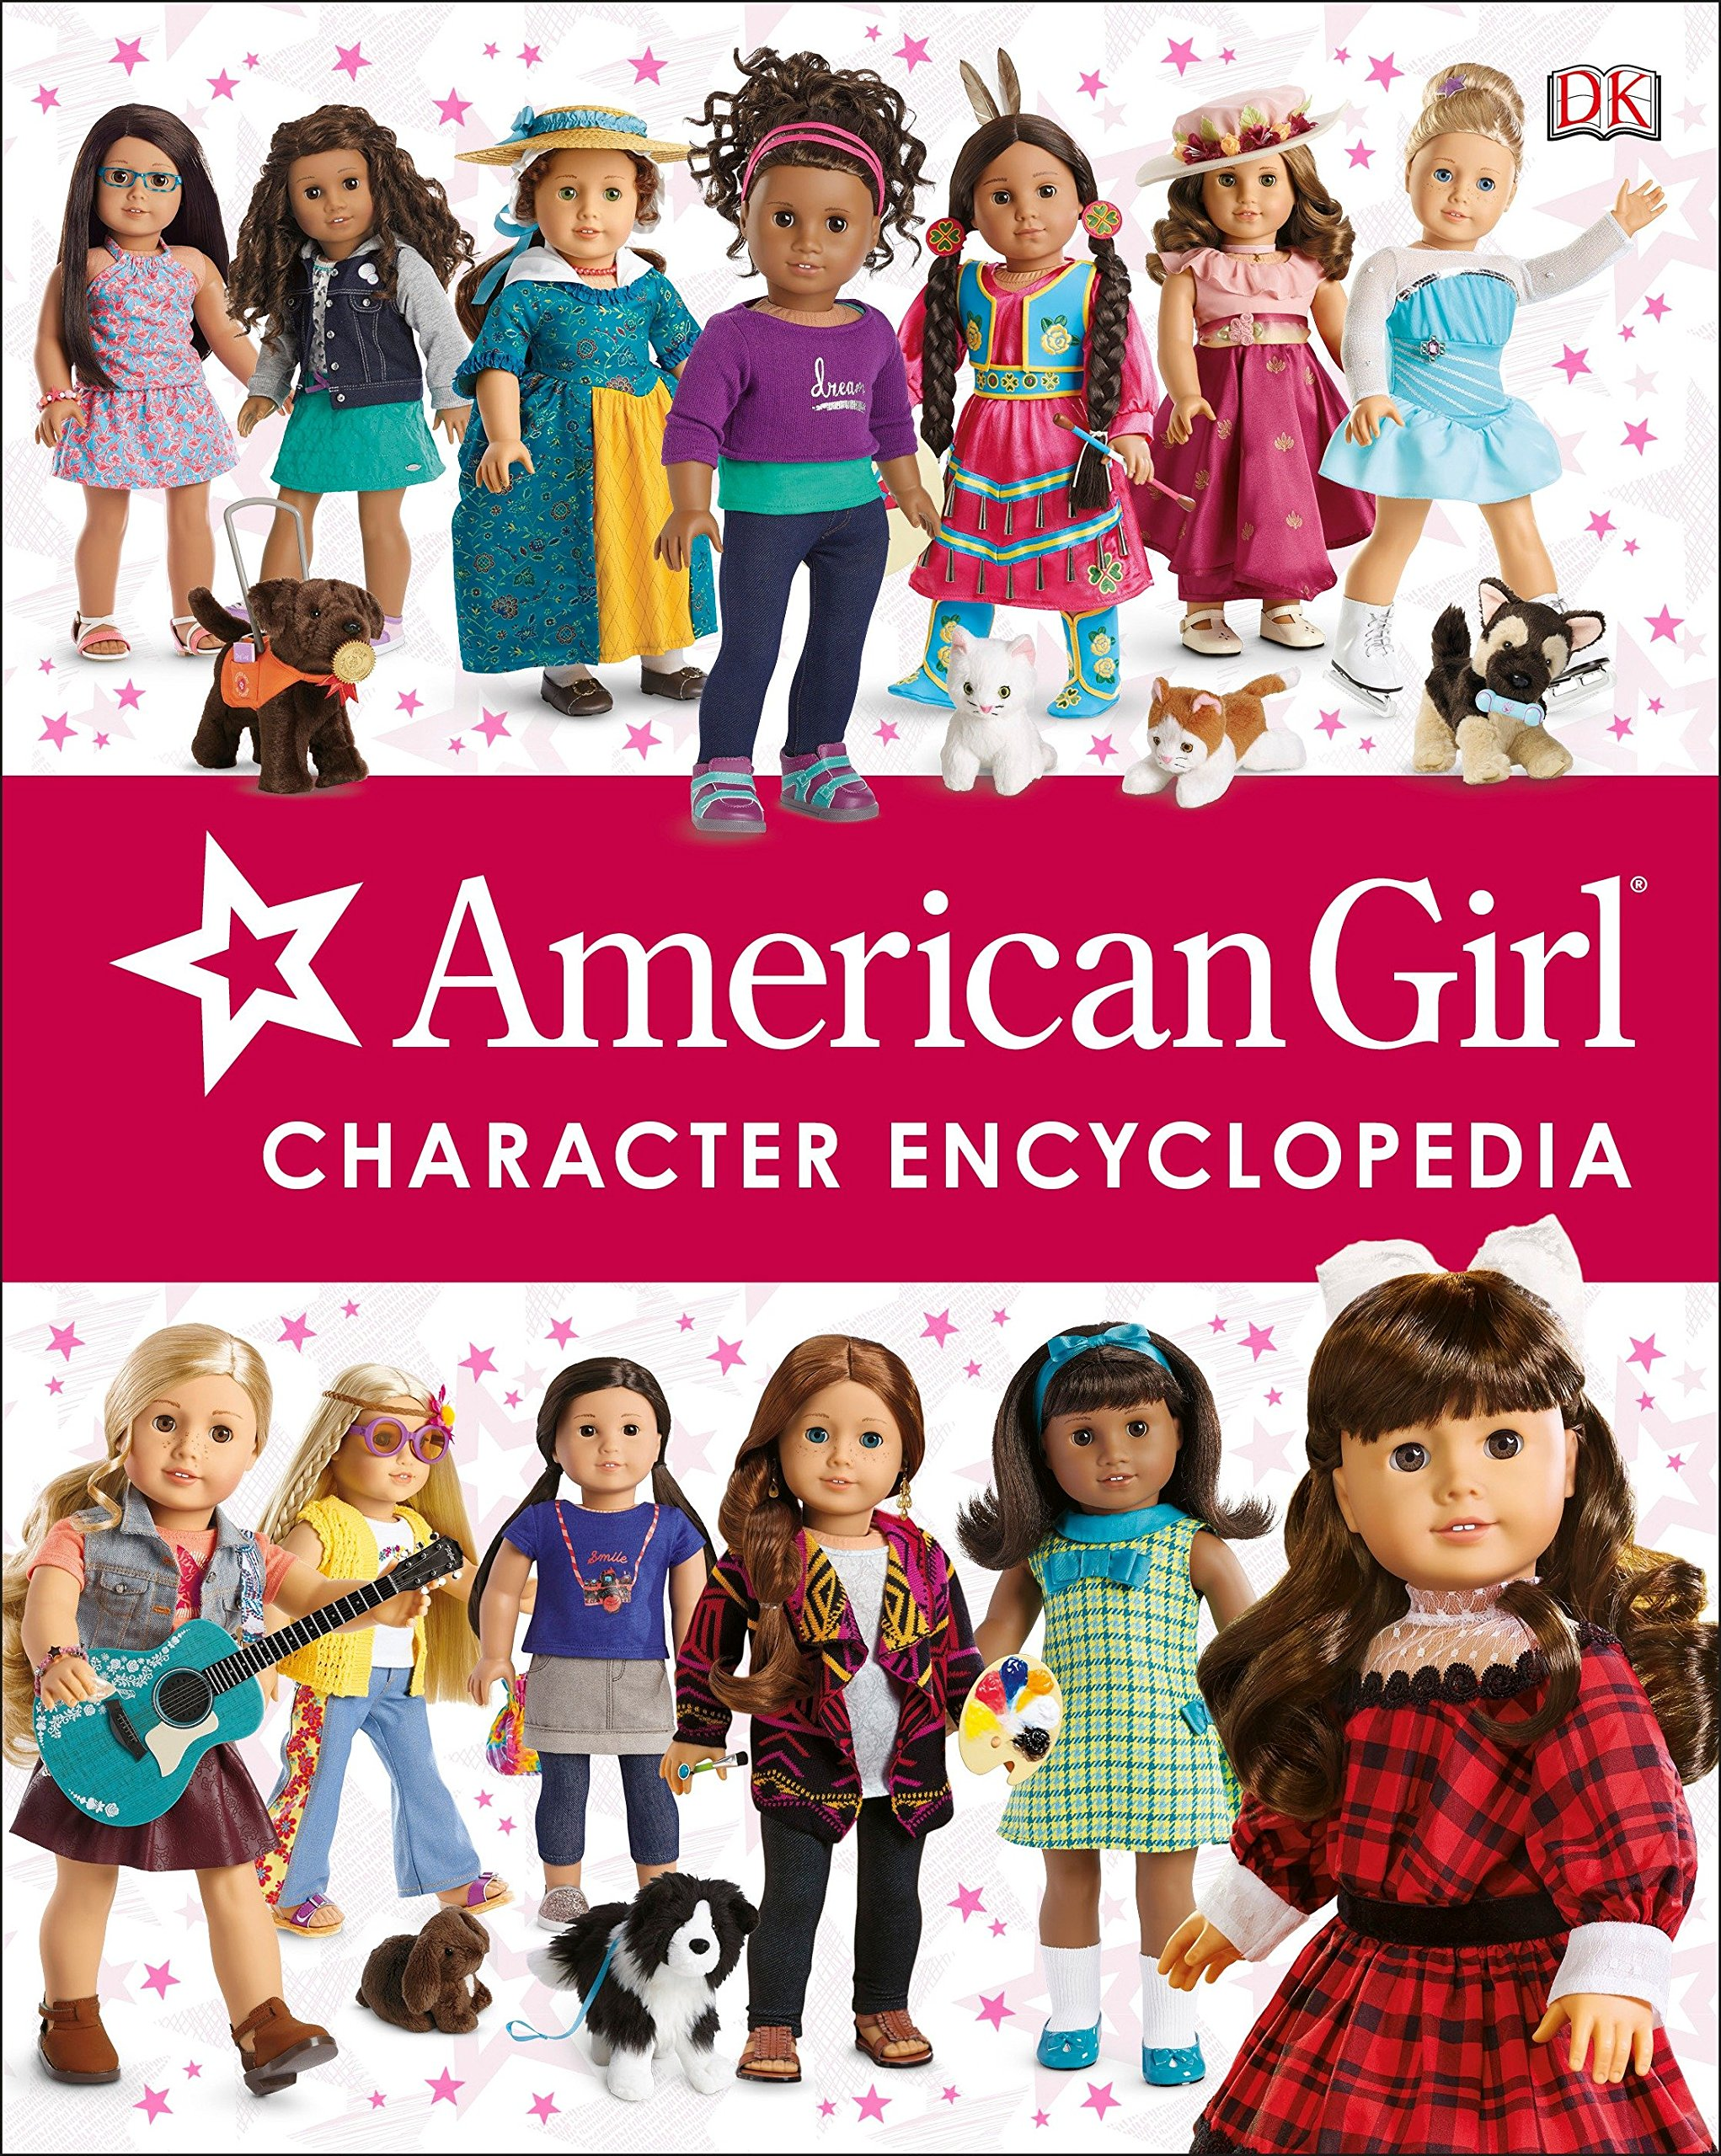 American Girl Doll Addy Retired School Satchel Supplies Union Reader Book PC